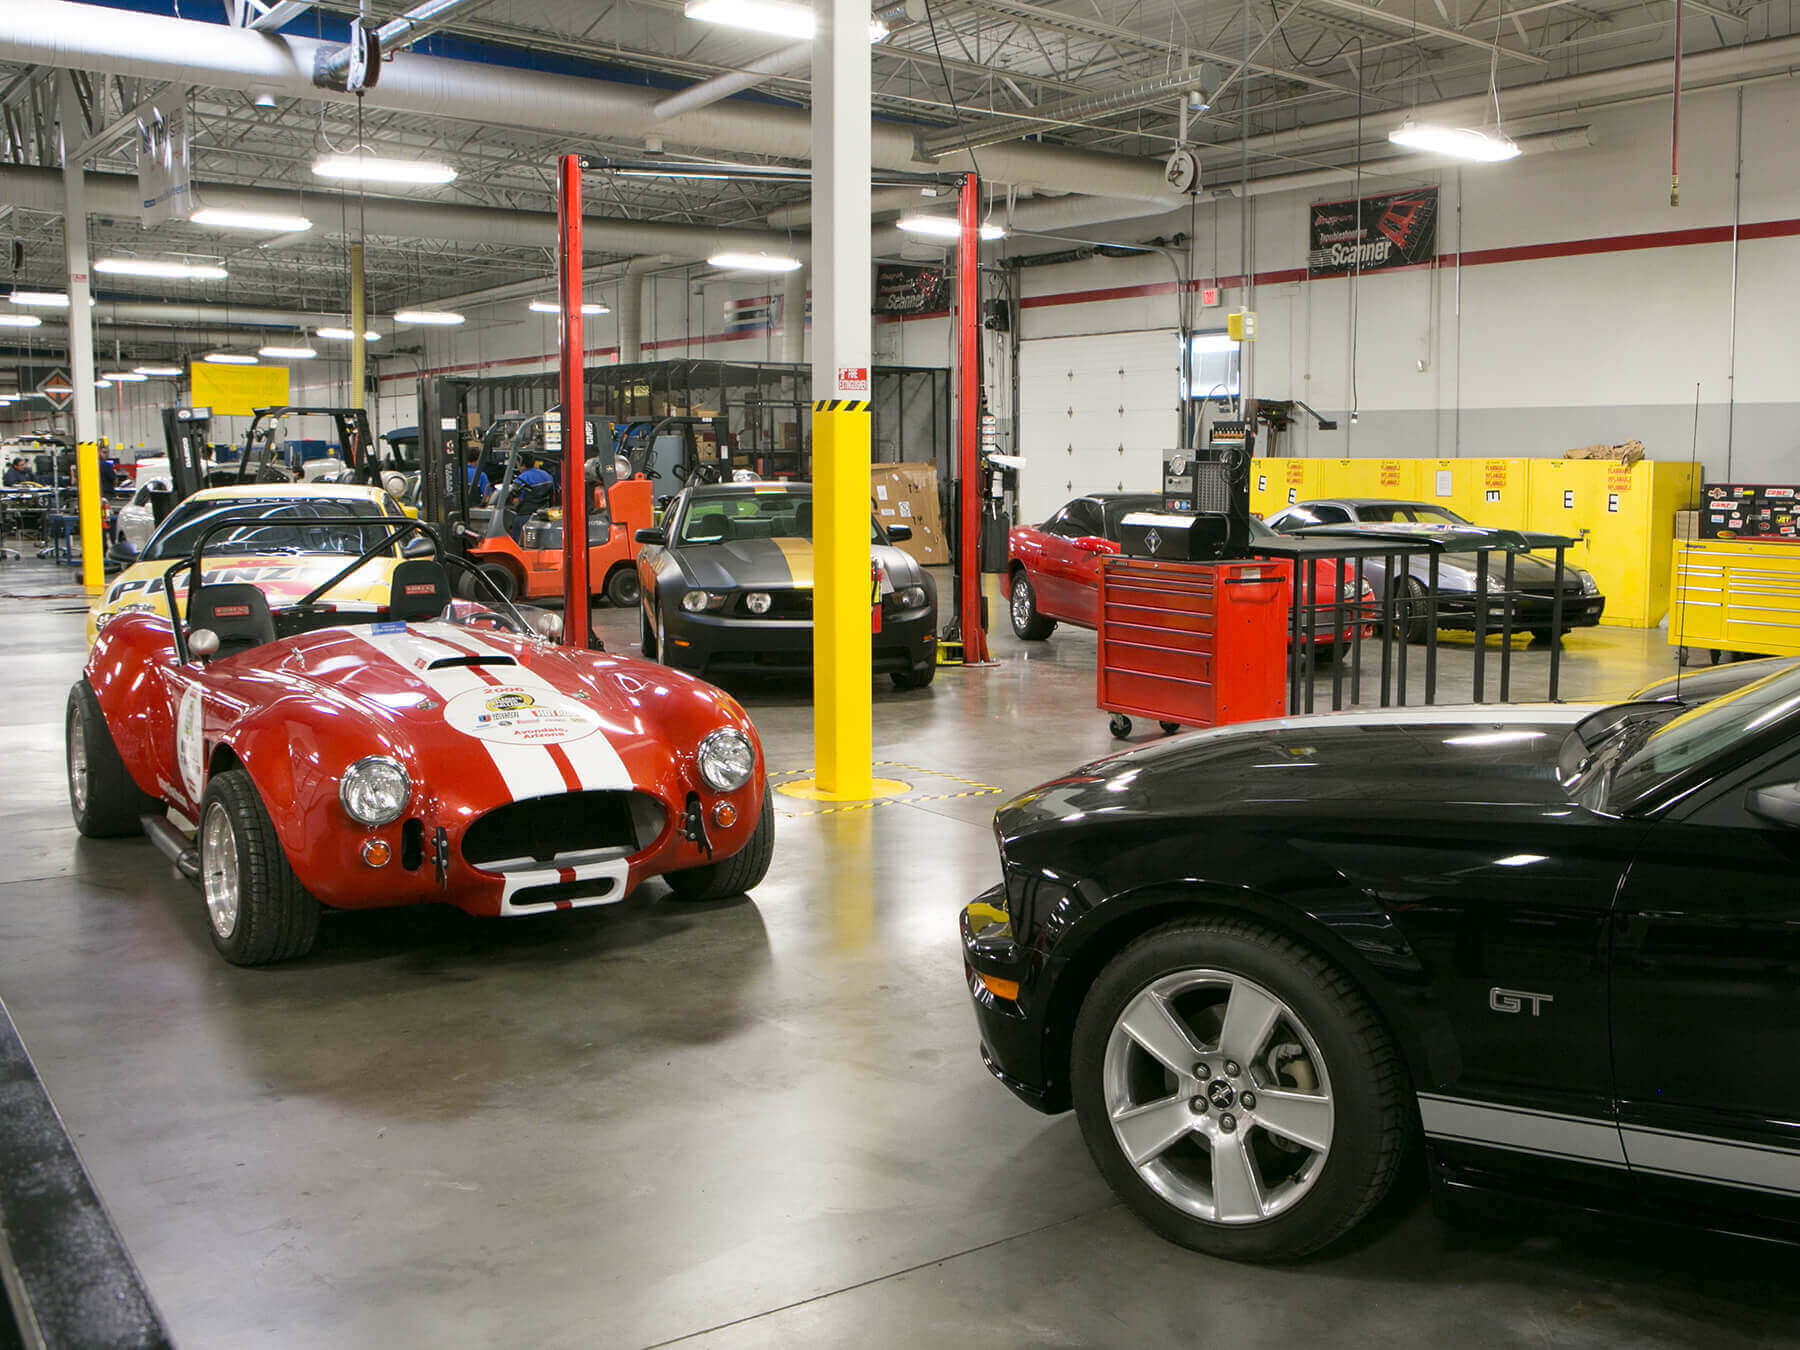 Red sports car with a black mustang GT in the auto lab at Avondale Campus